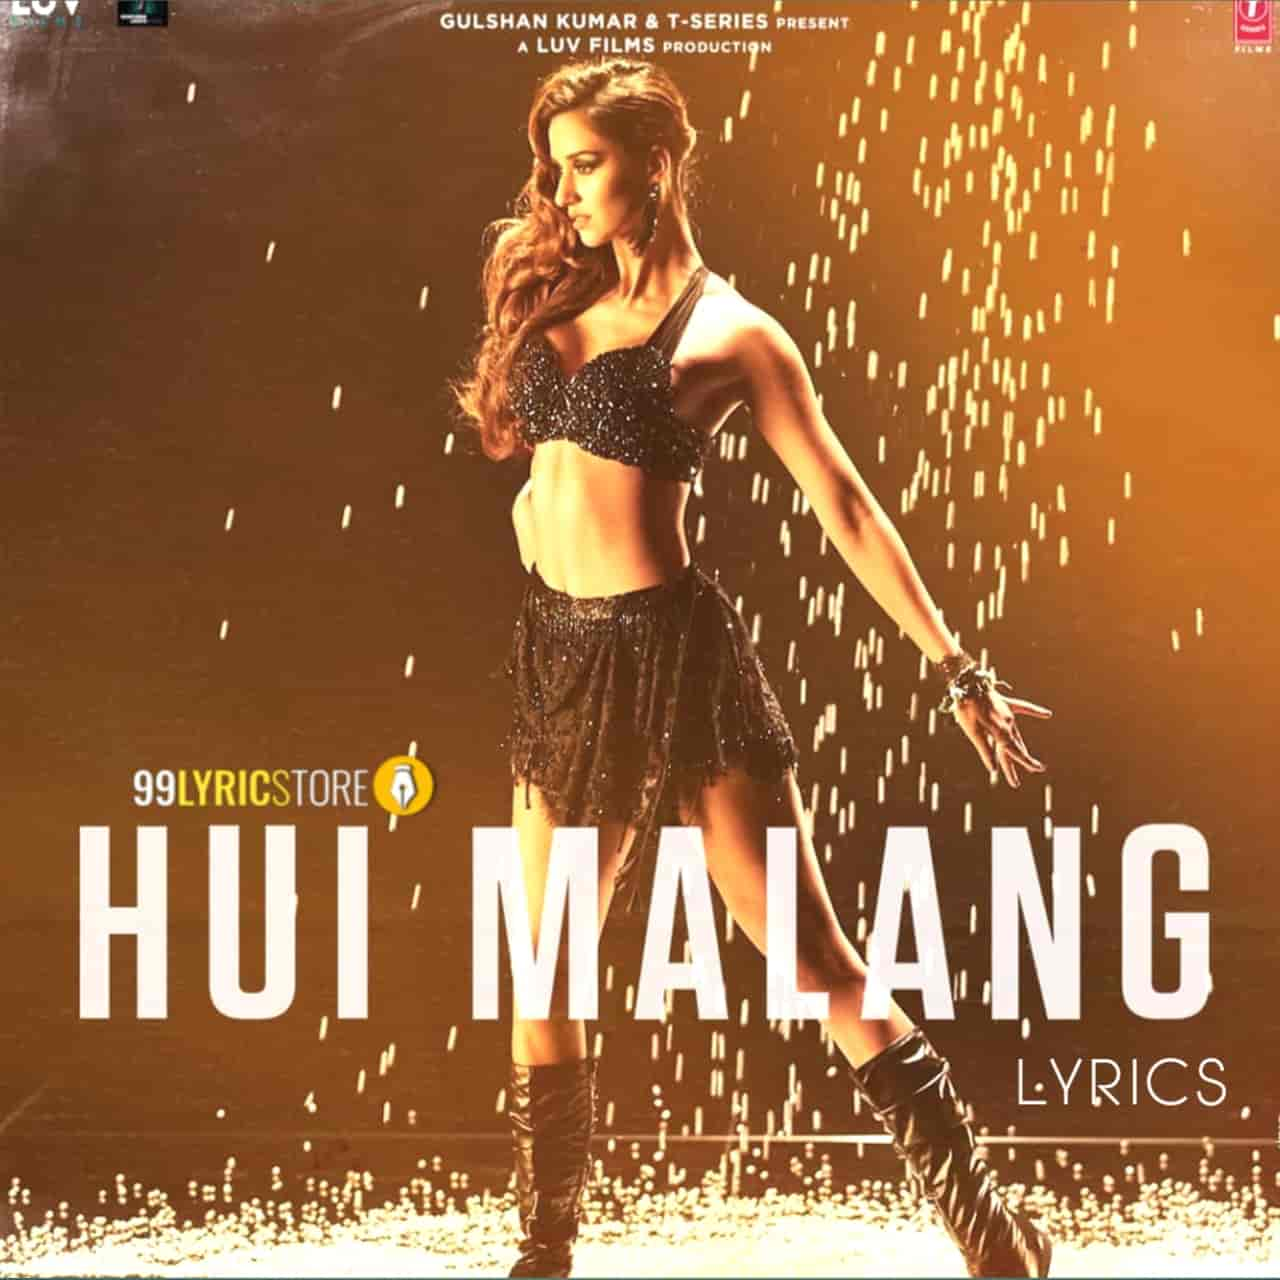 After releasing the sad song 'Humrah'  the makers of Aditya Roy Kapoor and Disha Patani starrer movie Malang ready to release another track which is titled Hui Malang in the voice of very gifted  female artist Asees Kaur. Music of this given by Ved Sharma while this beautiful song Hui Malang Lyrics are penned by Kunaal Verma and Harsh Limbachiya. This song is presented by T-Series label.